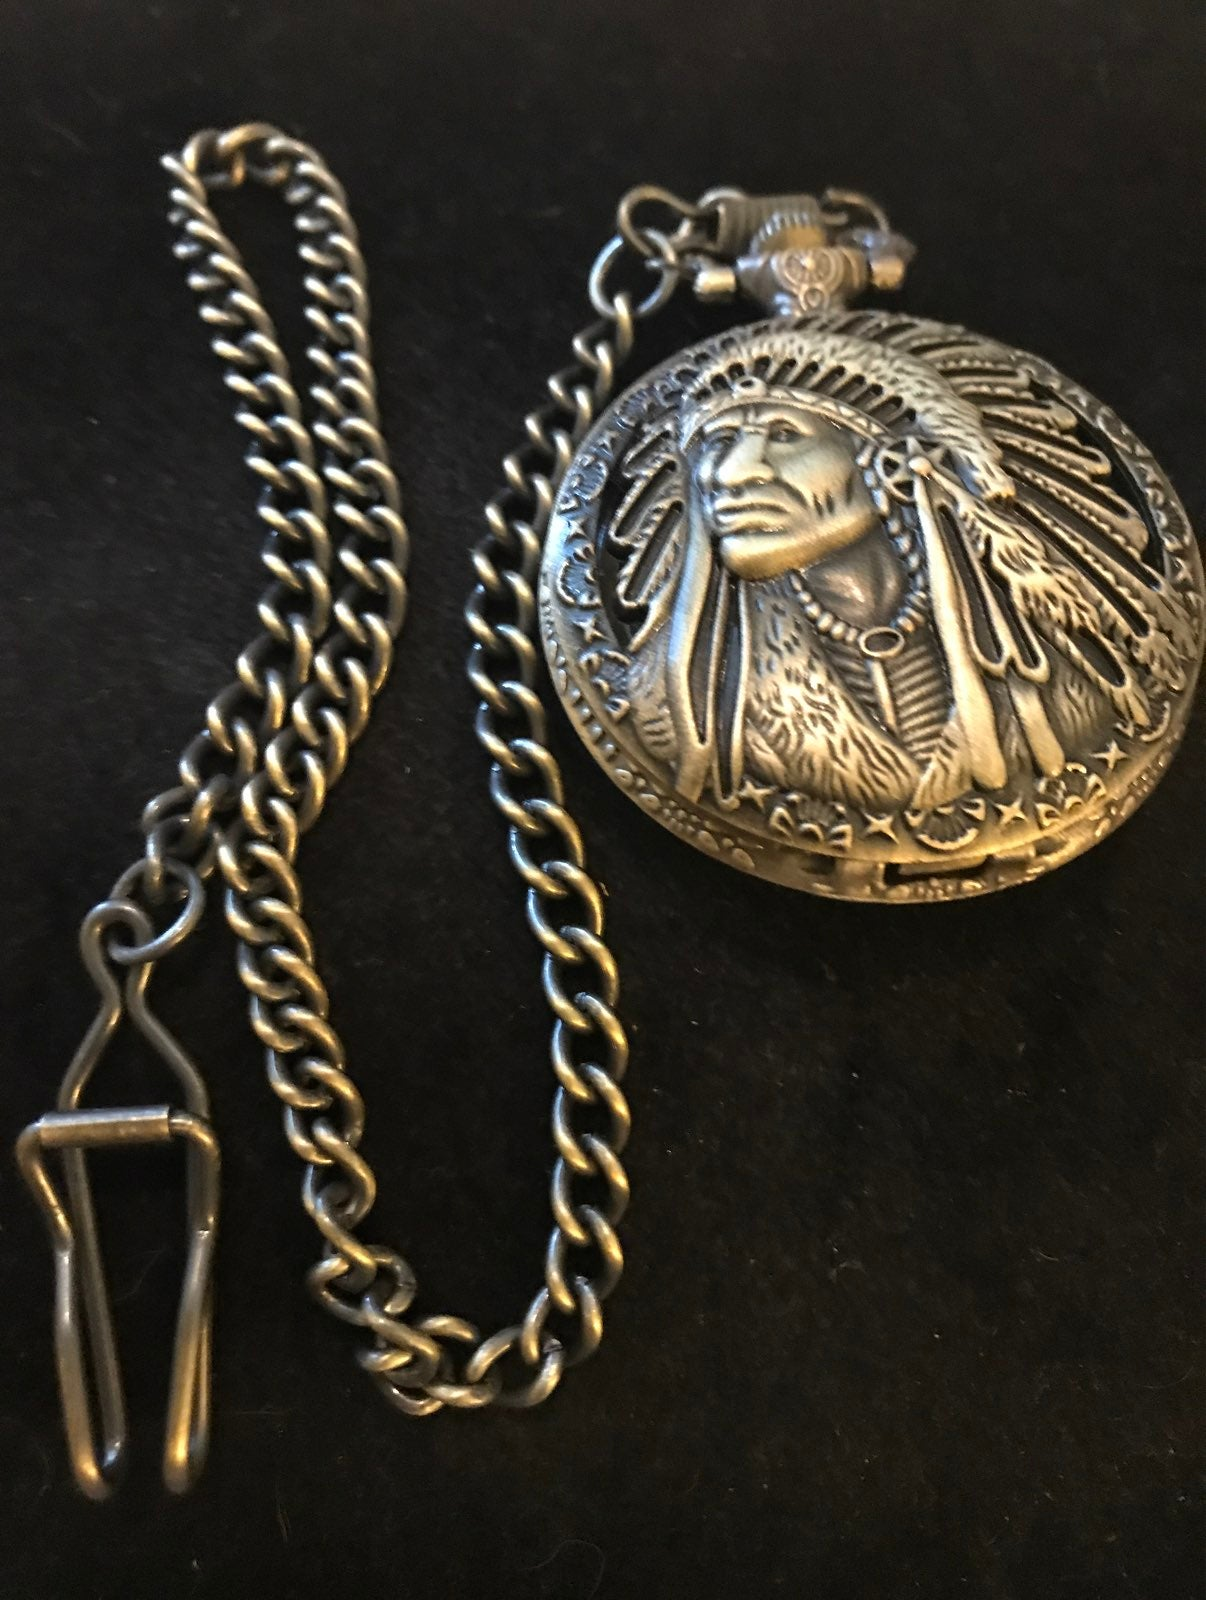 Indianhead pocket watch with chain